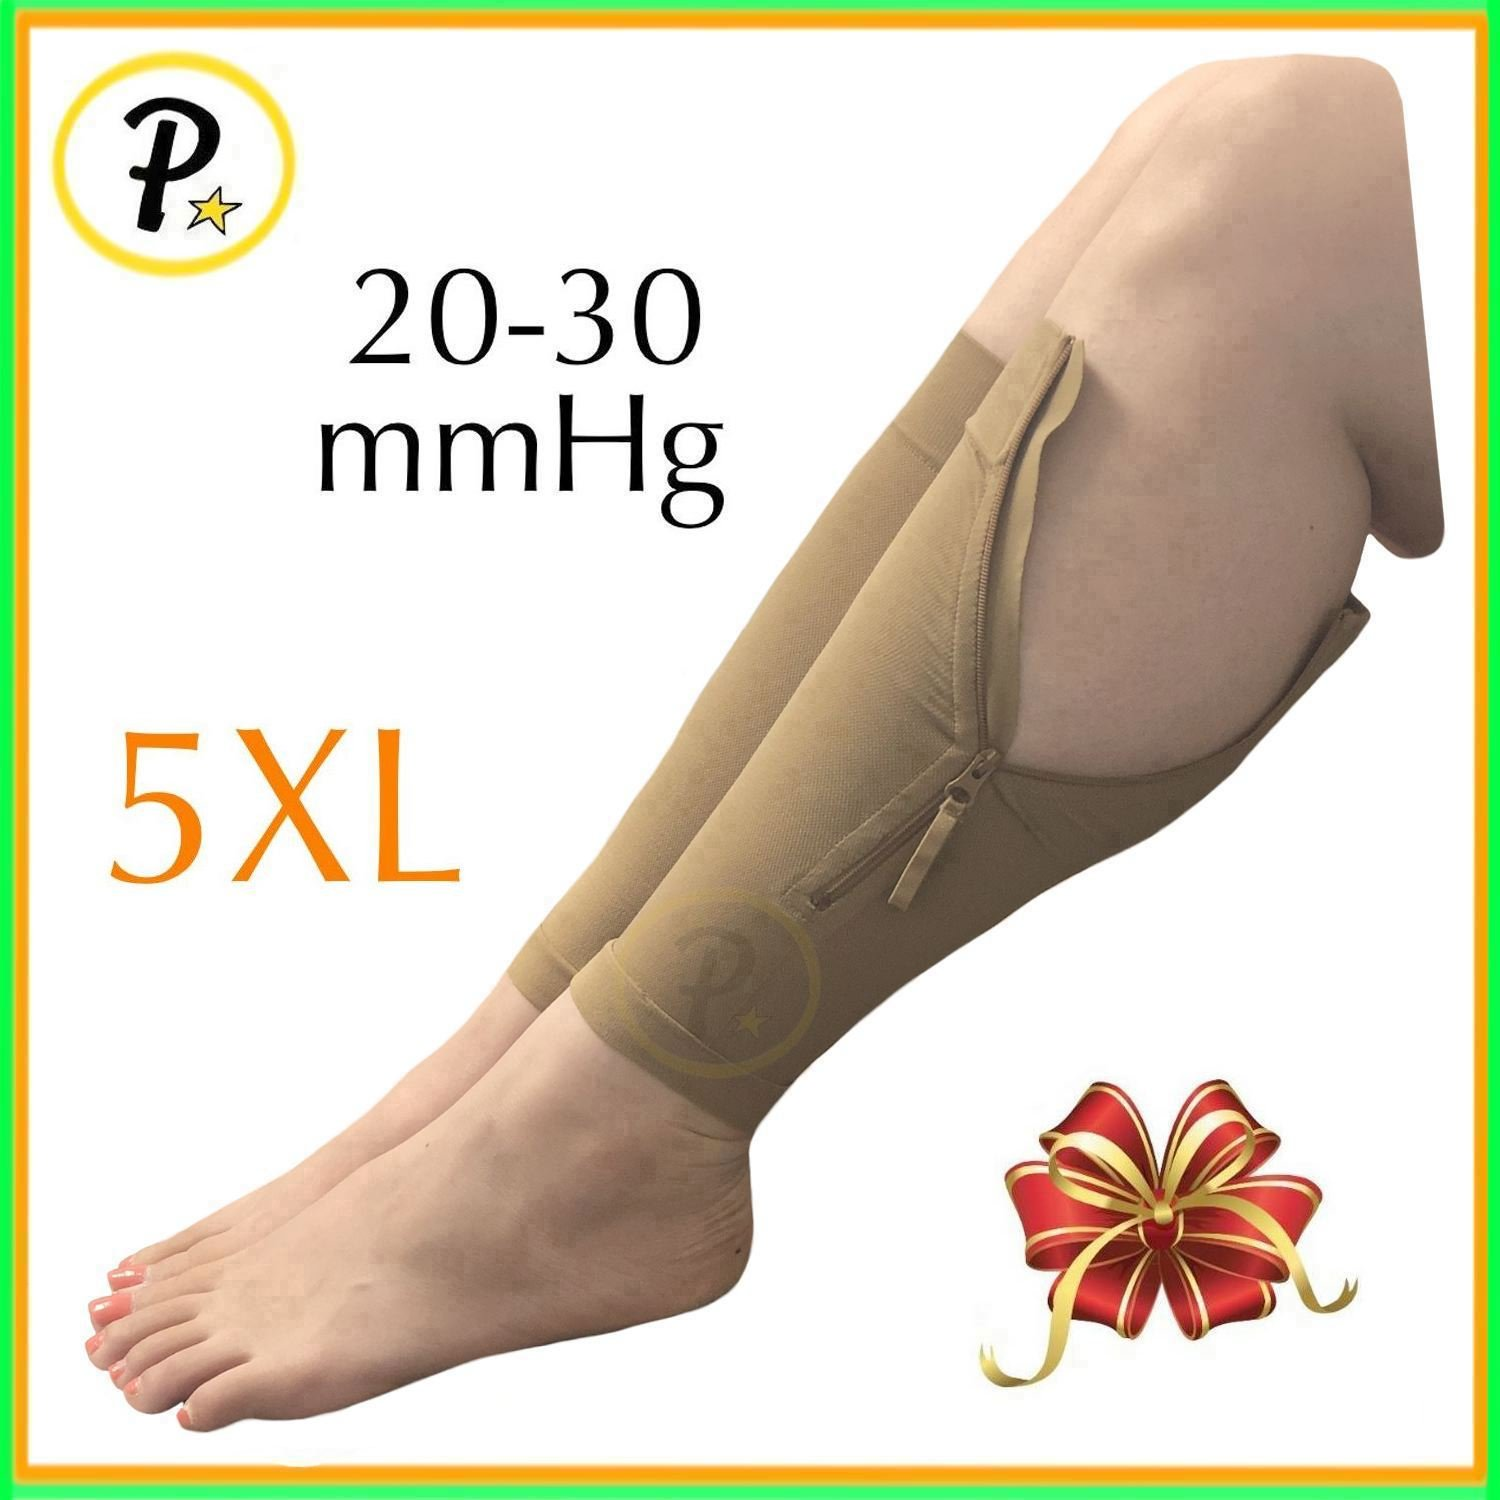 Presadee New Big Tall Calf Sleeve with Zipper 20-30 mmHg Compression Extra Wide Shin Energize Leg Swelling Circulation (Beige, 5XL)